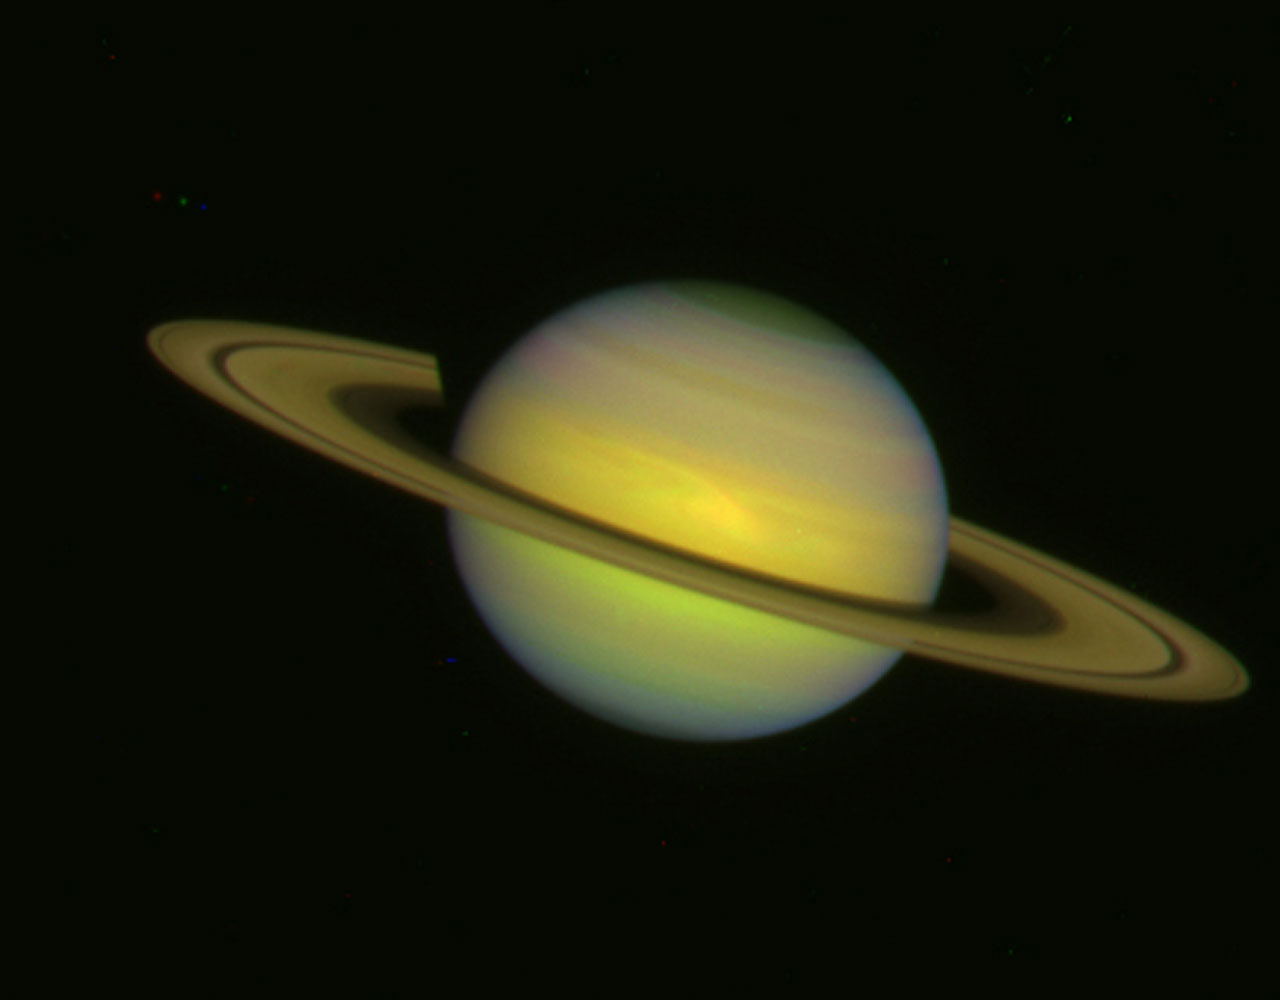 hubble images of saturn - photo #3